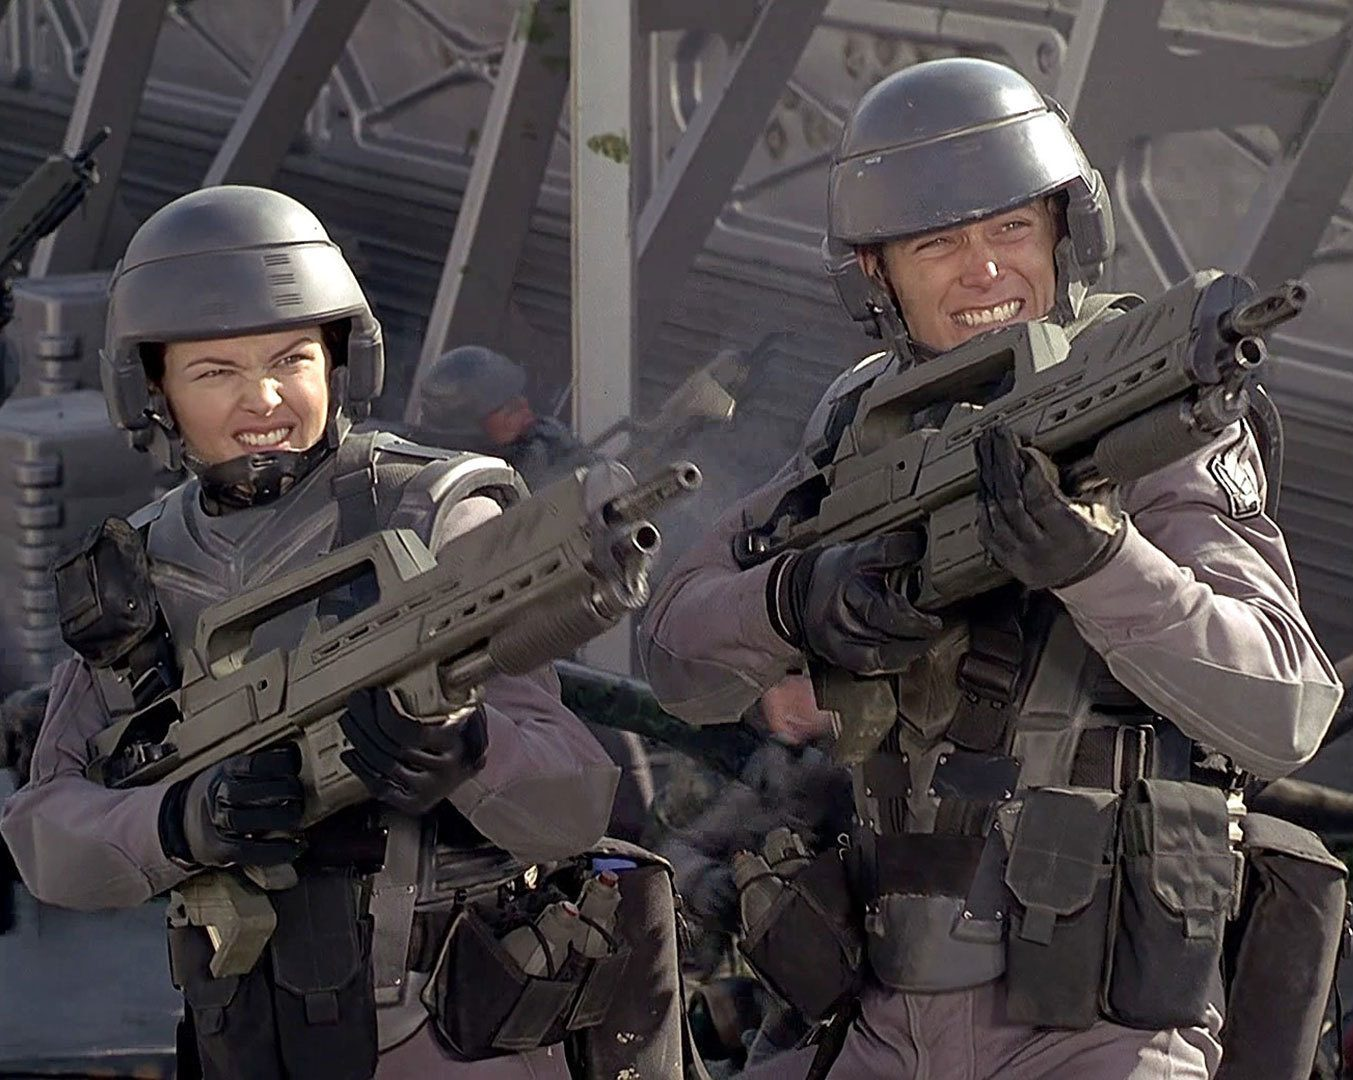 starship troopers 1997 e1621519996614 Mark Wahlberg Almost Starred, And More You Never Knew About Starship Troopers